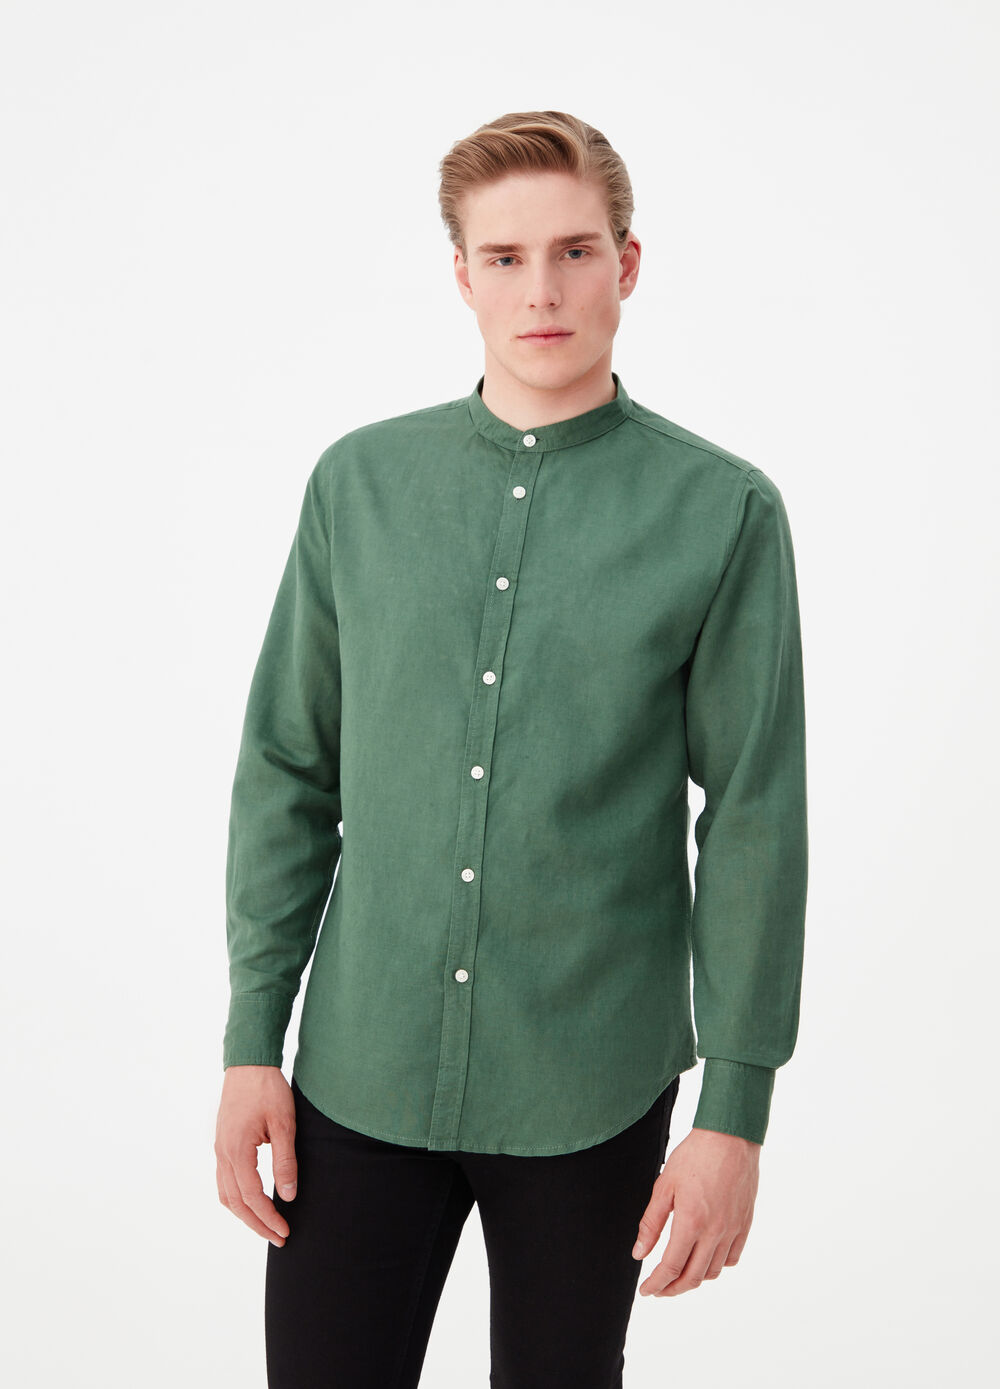 Linen and cotton shirt with mandarin collar.